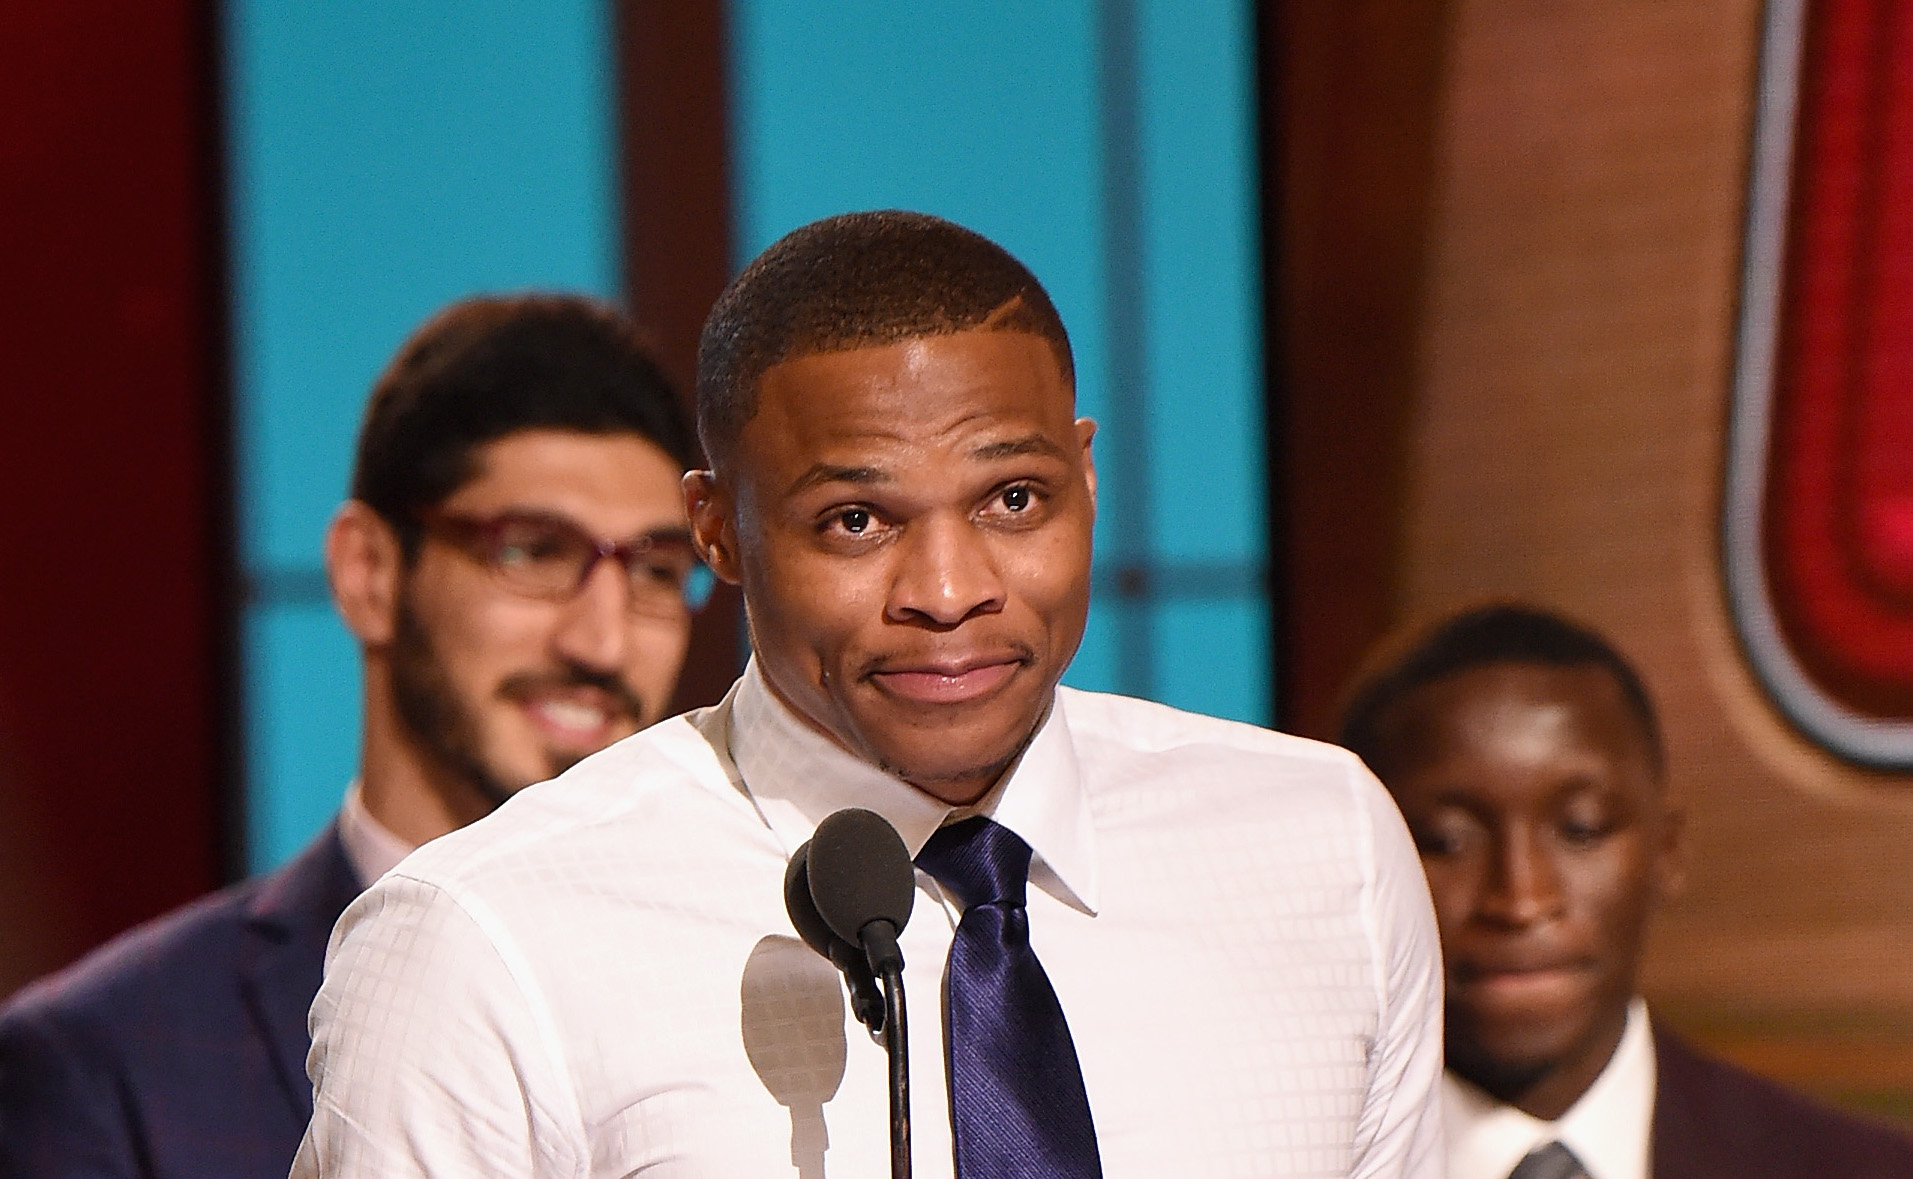 Russell Westbrook wins NBA MVP award